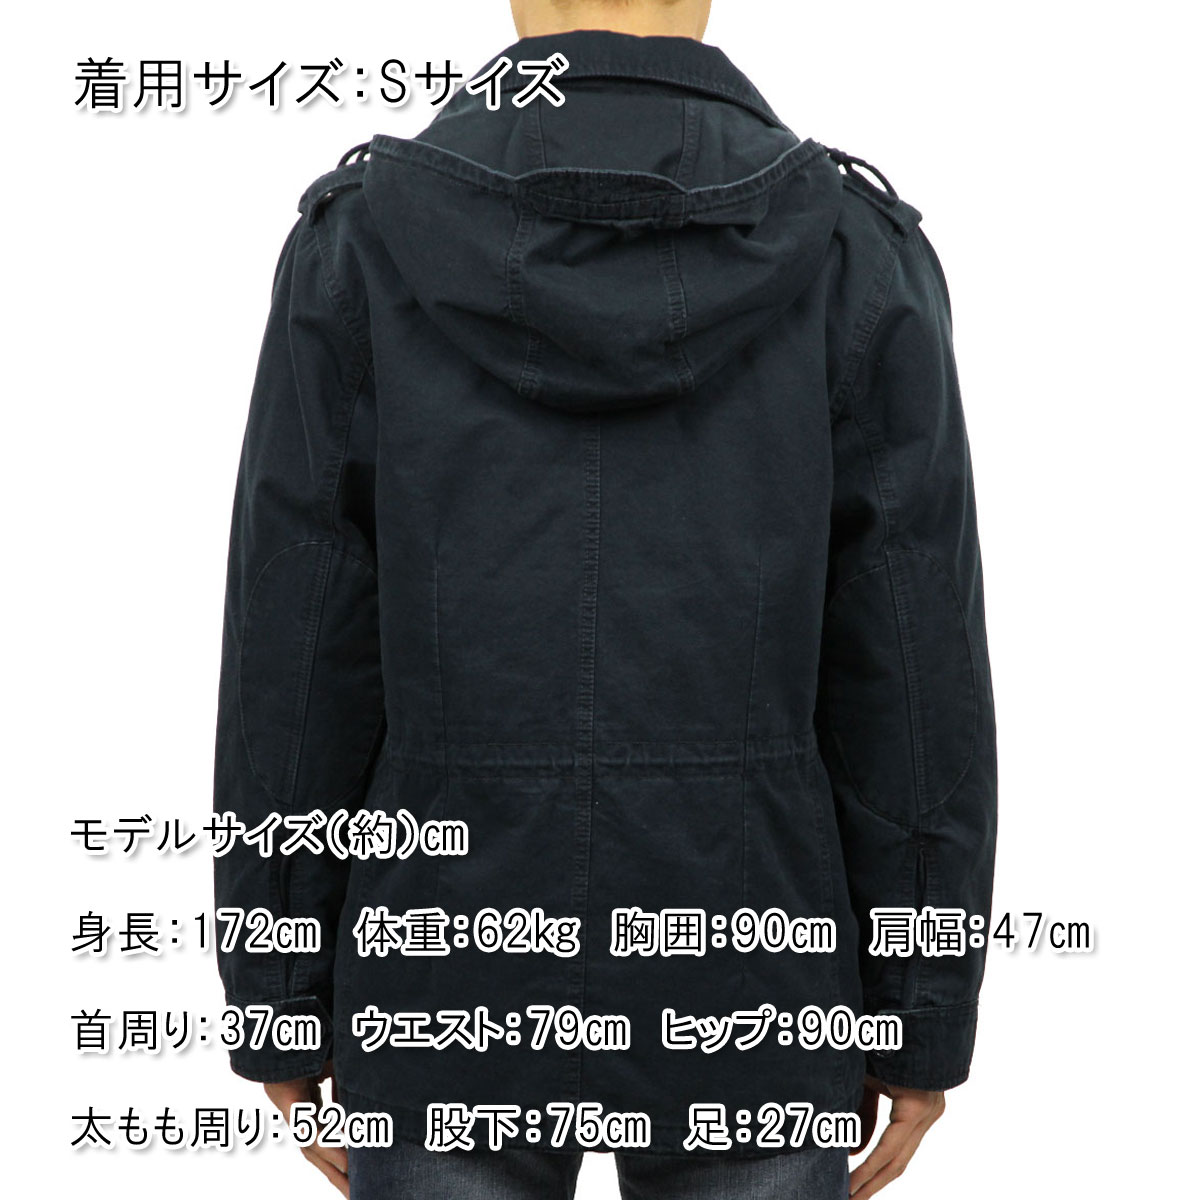 e7593802077 ABBA black Abercrombie   Fitch regular article men outer Mods coat MILITARY  FIELD JACKET 132-328-1215-200